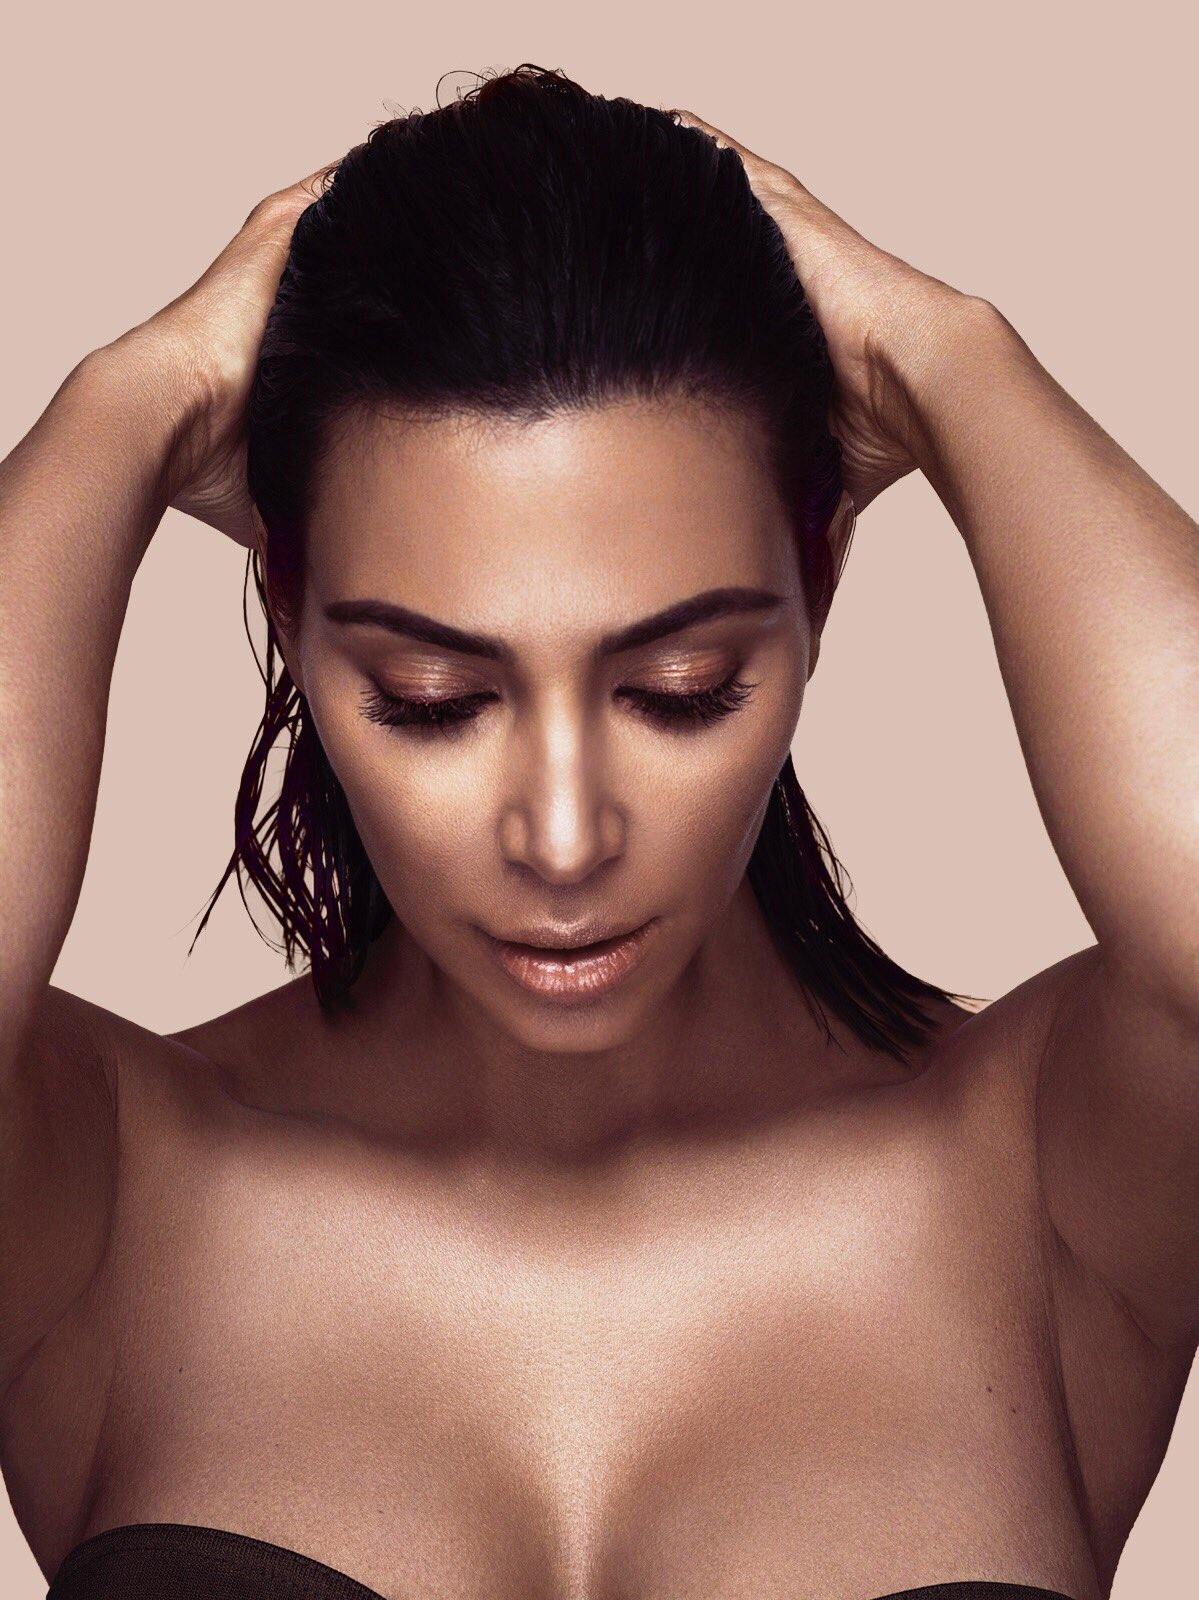 6.21.17 @kkwbeauty https://t.co/SaJRzHlX27